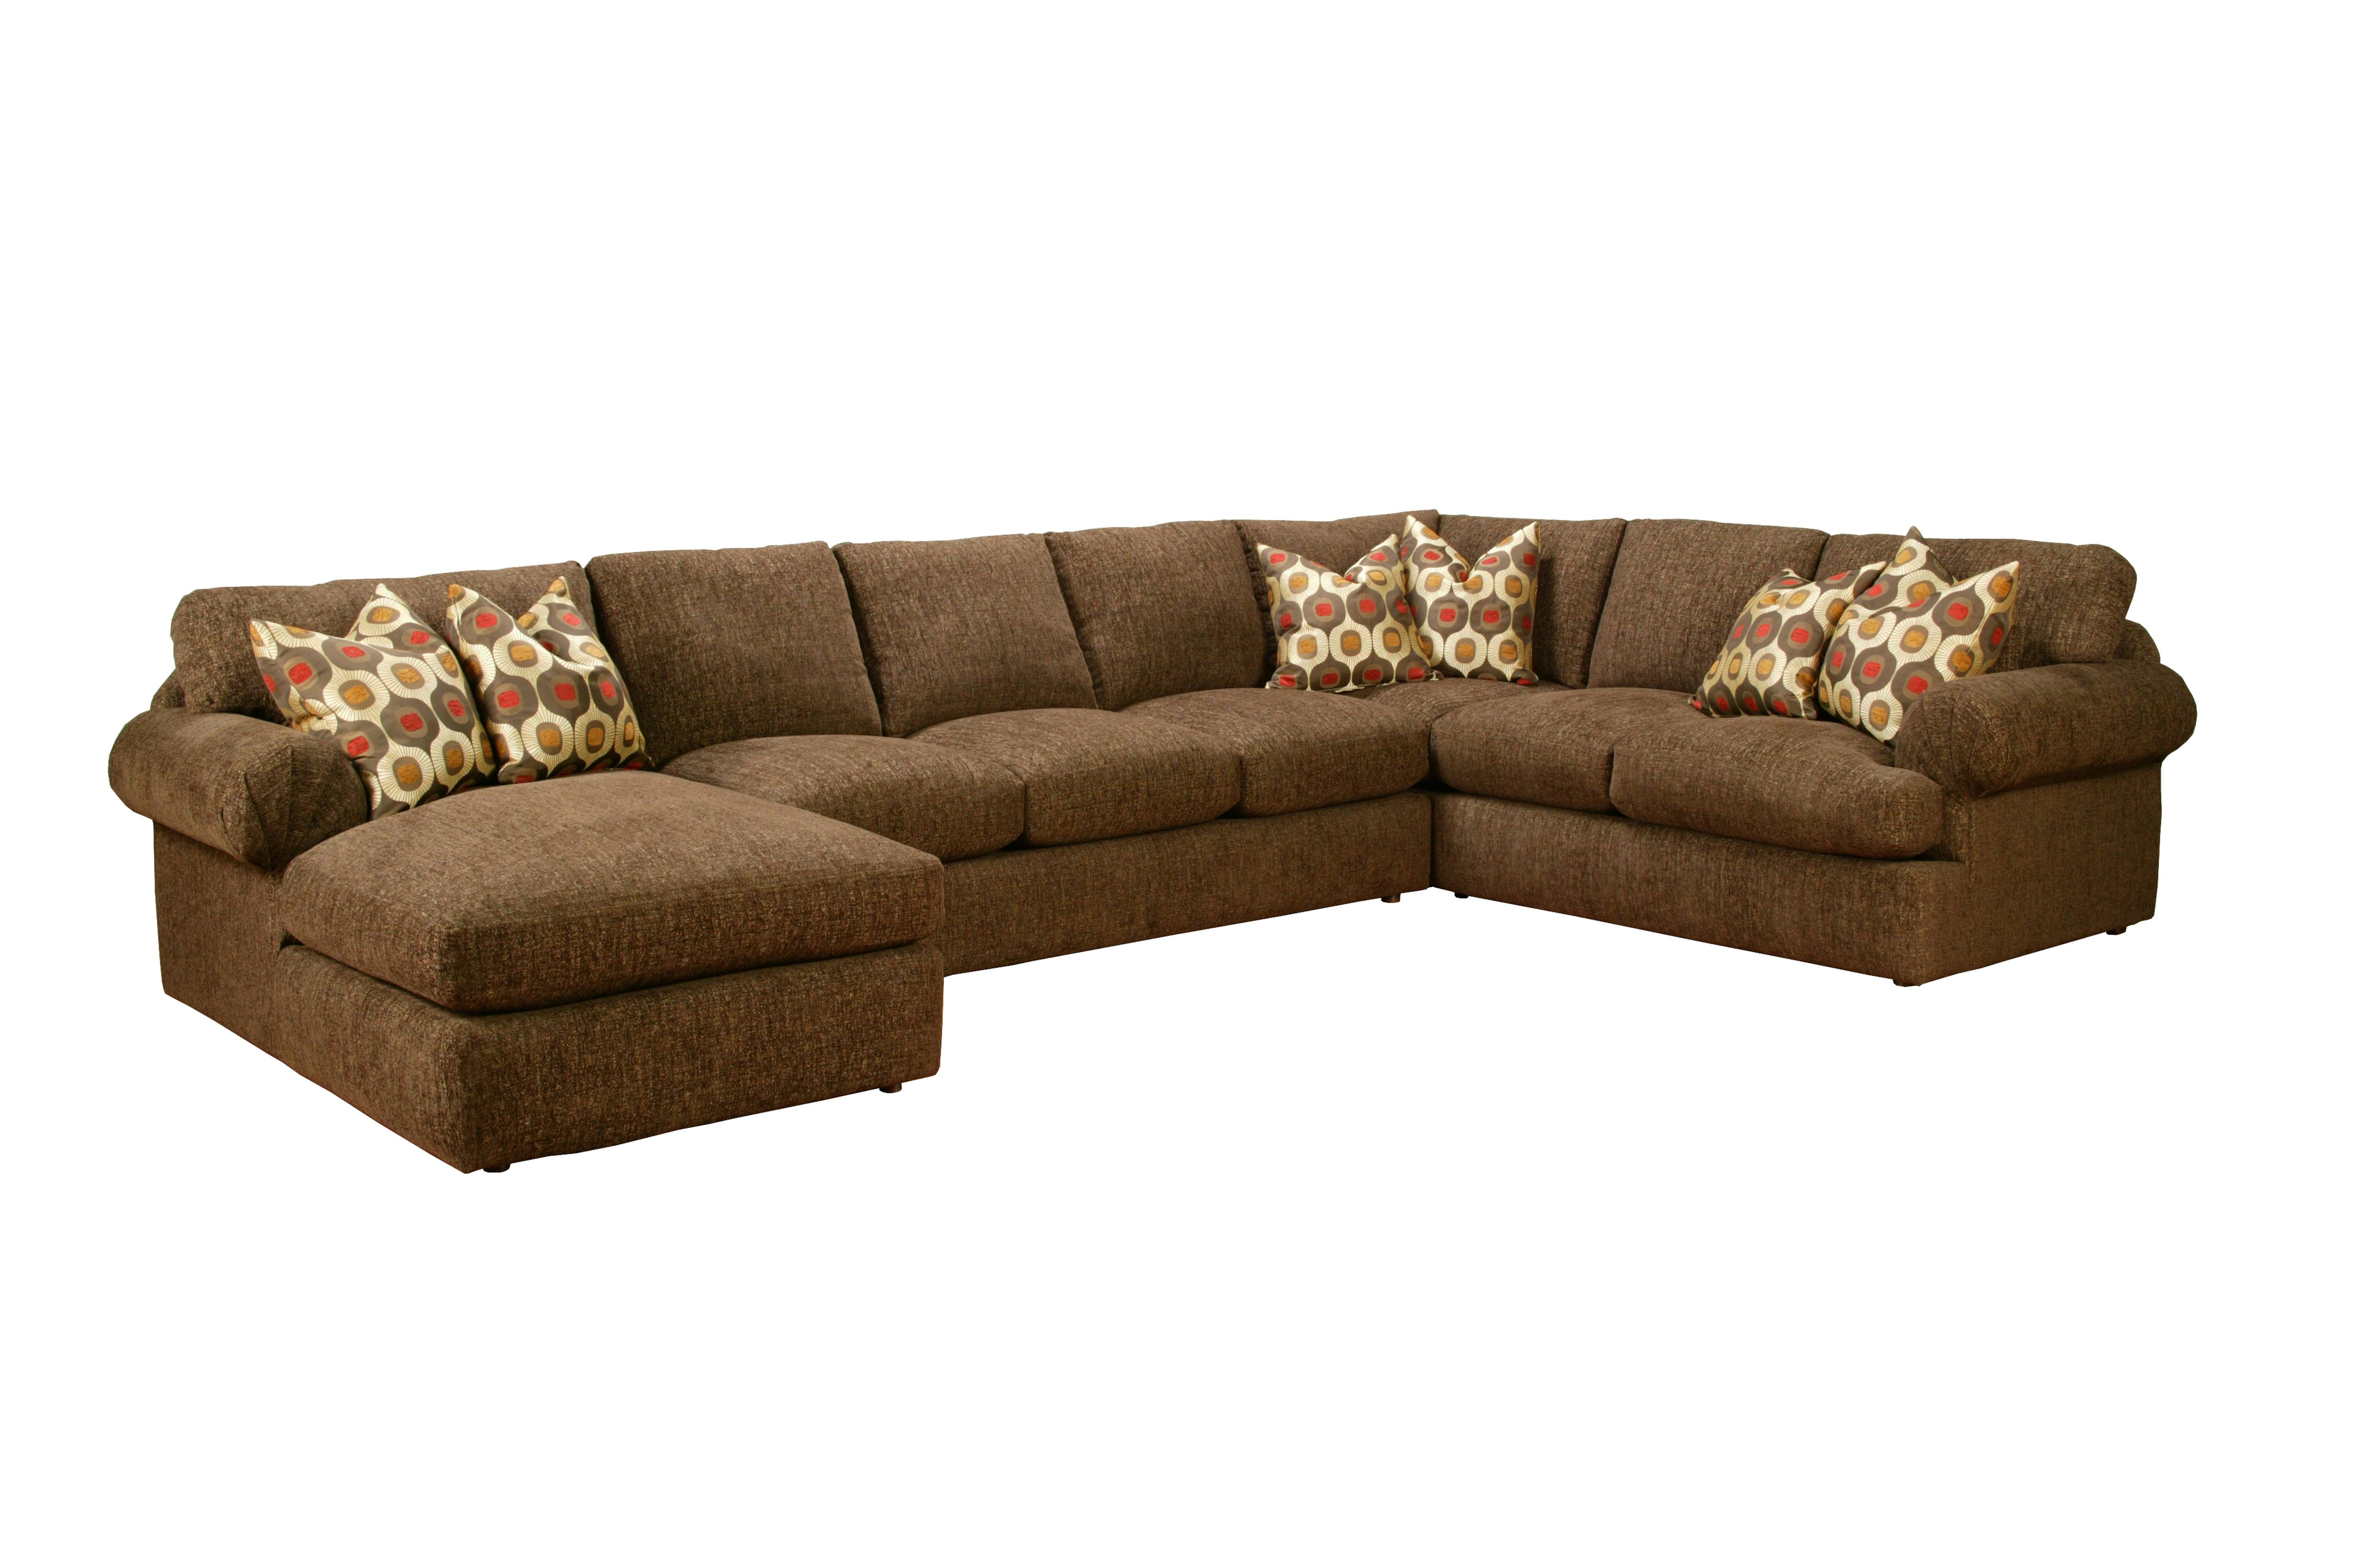 Michaels Furniture Portland - Home Design Ideas And Pictures inside Sectional Sofas Portland (Image 17 of 30)